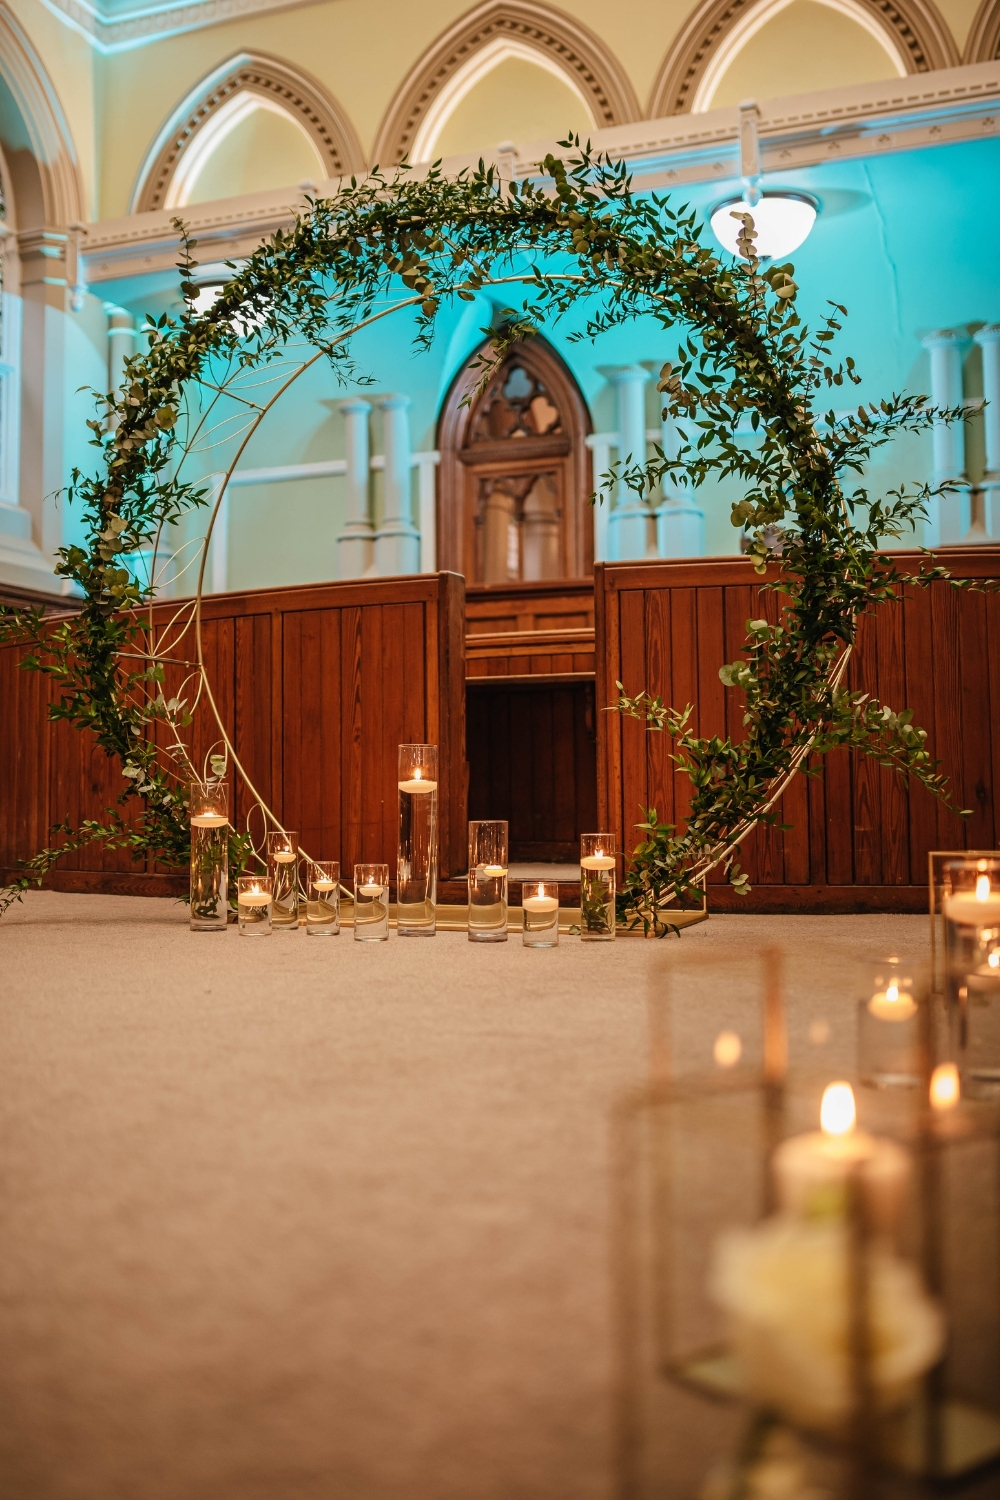 Foliage moongate wedding arch Ambience Venue Styling Teesside